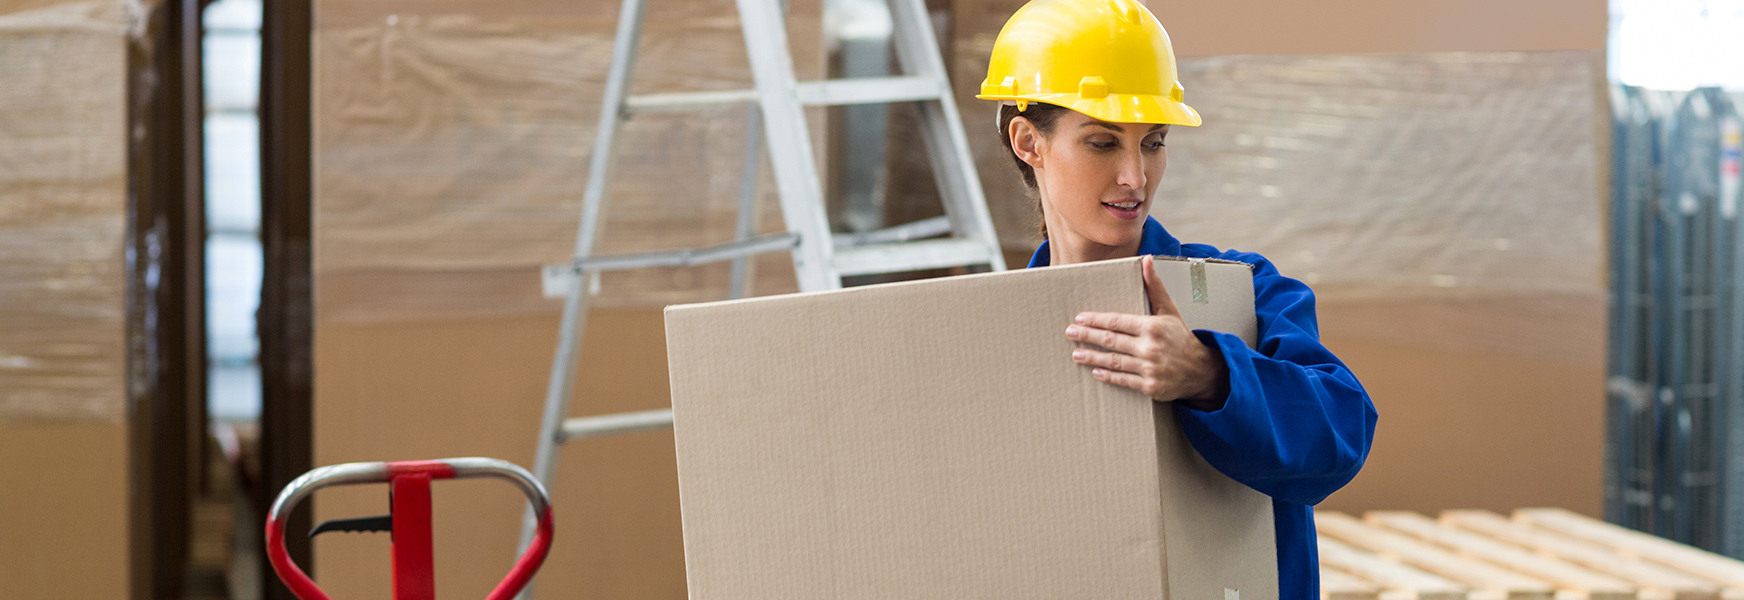 Woman lifting box in power zone